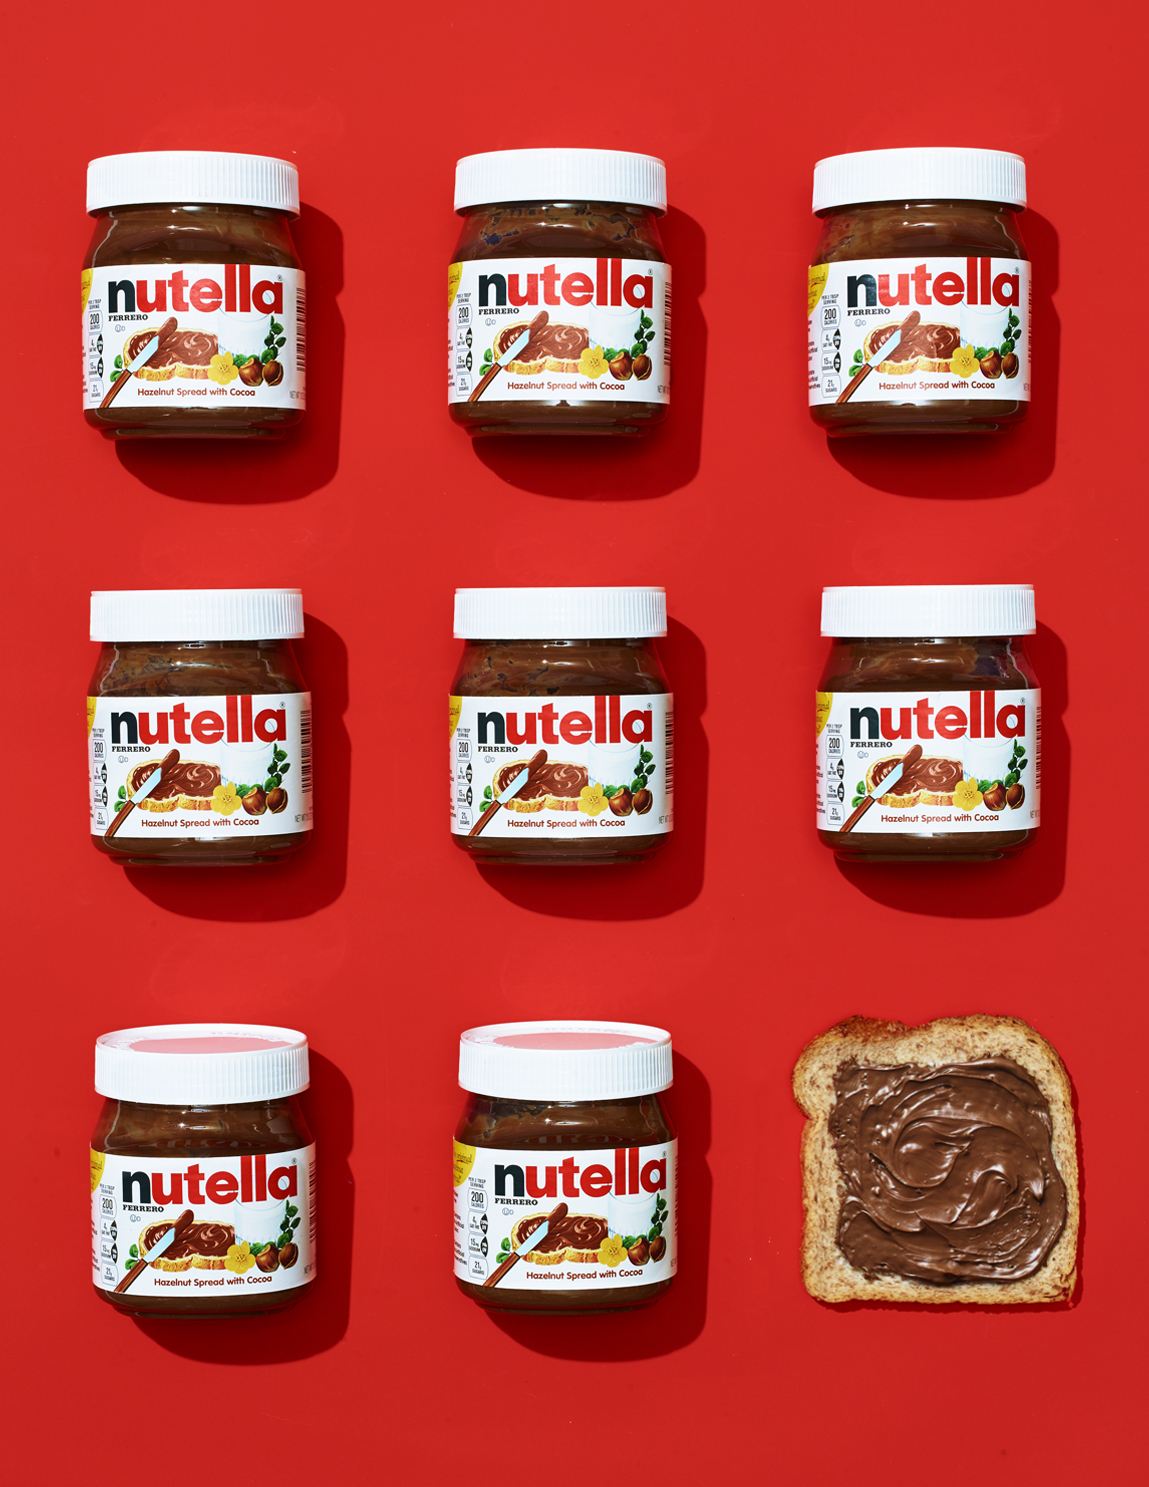 Nutella Is Having a Bit of an Identity Crisis